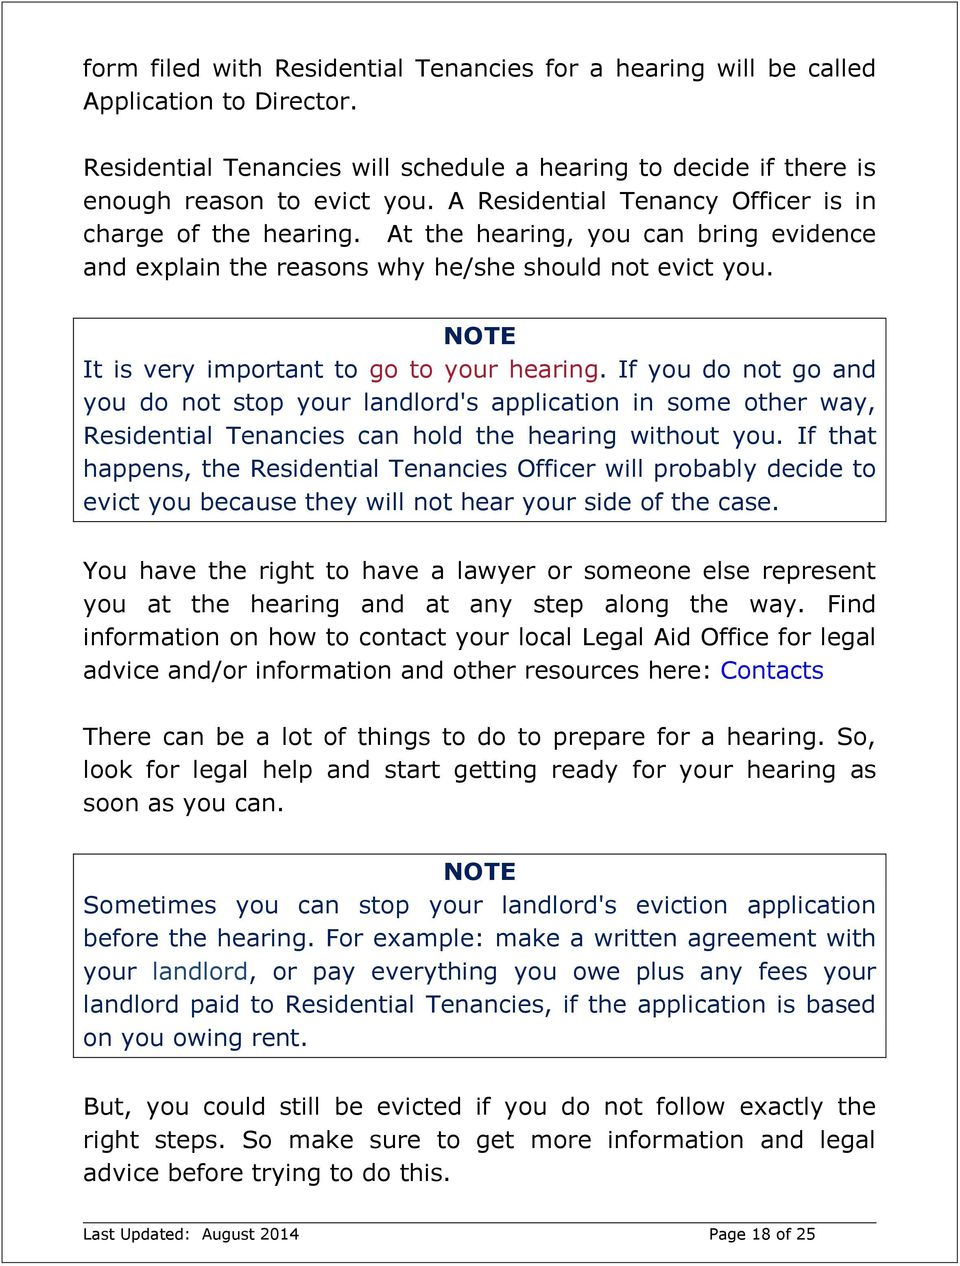 NOTE It is very important to go to your hearing. If you do not go and you do not stop your landlord's application in some other way, Residential Tenancies can hold the hearing without you.